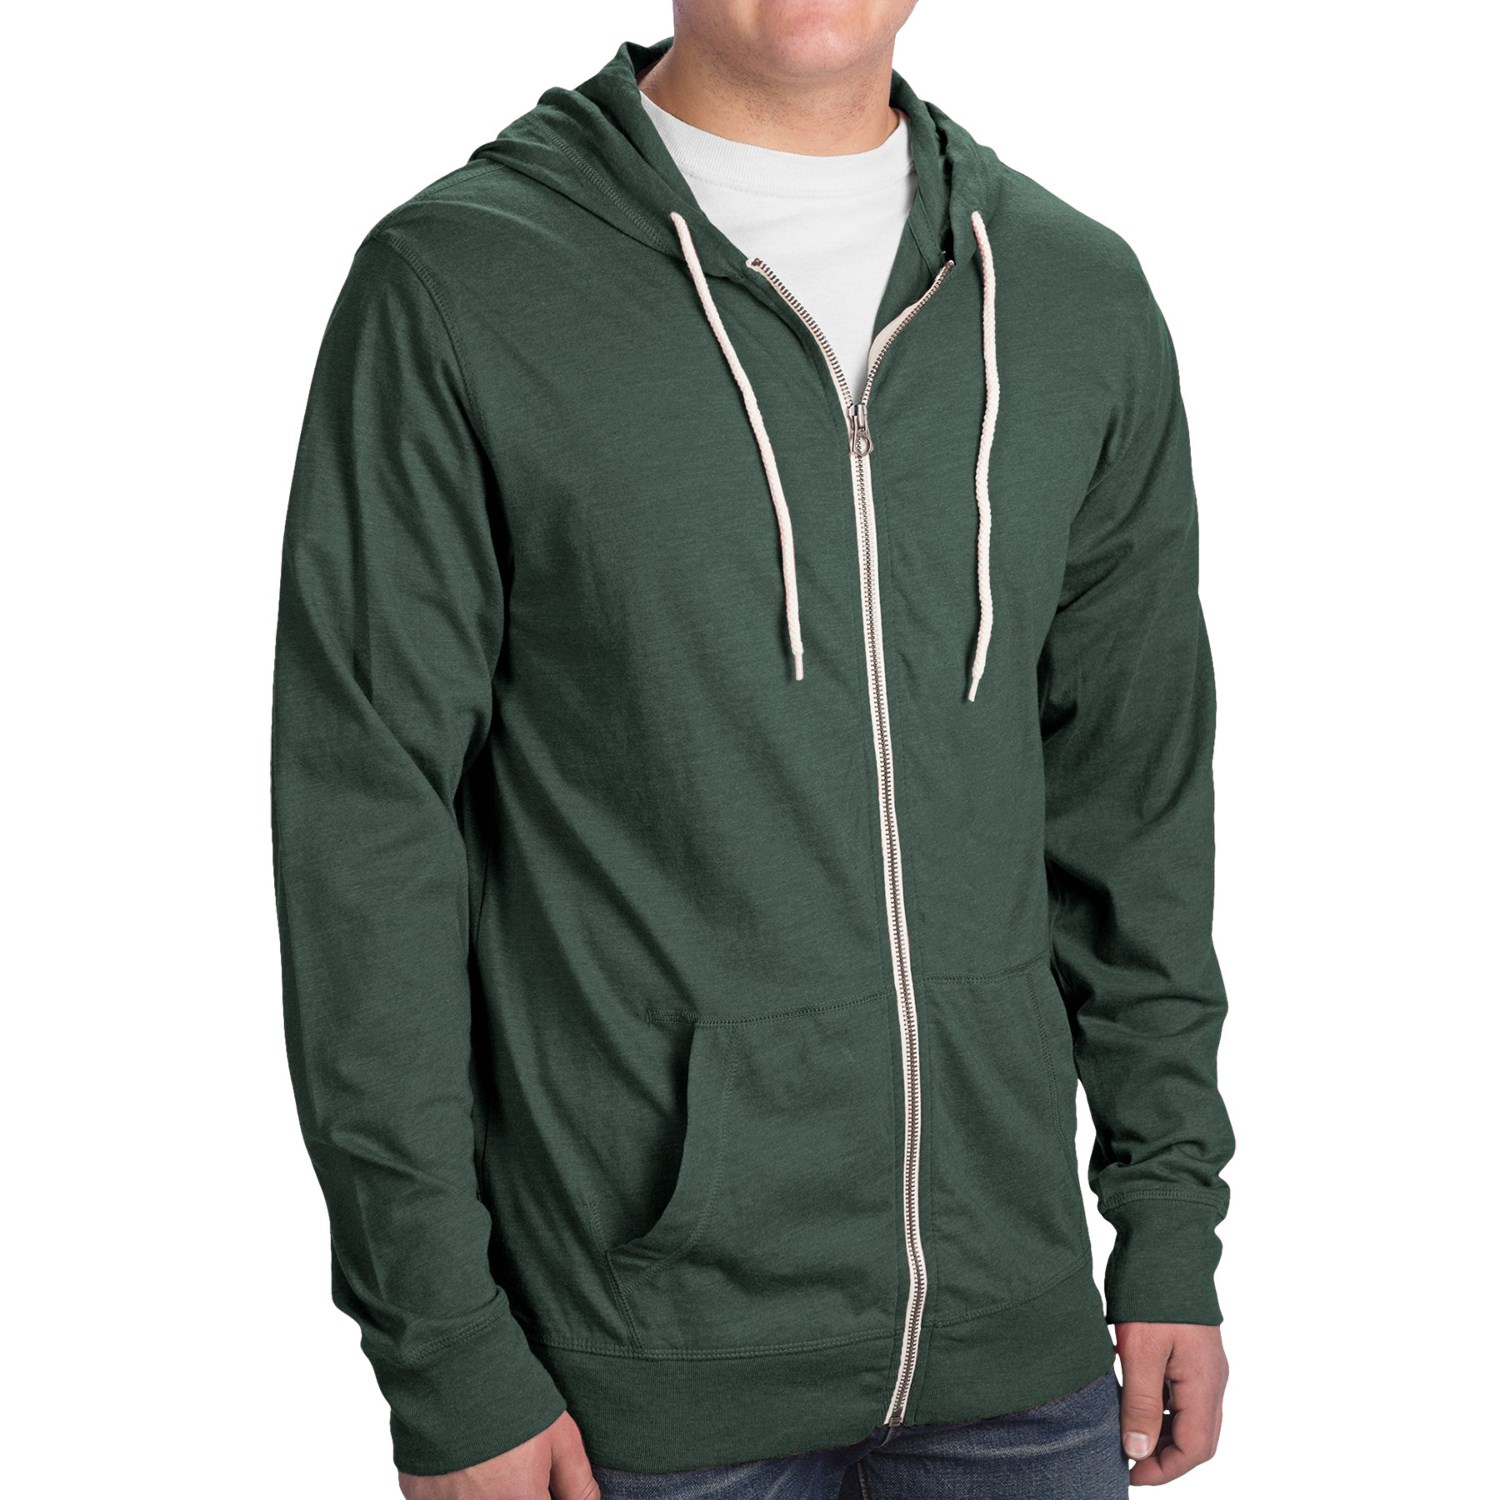 Find an outstanding selection of lightweight hoodies for men in the exclusive lineup now available at Old Navy. Thin Men's Hoodies for Cool Days Men's thin hoodies from Old Navy are exceptionally versatile additions to your wardrobe, offering a range of options for wear.